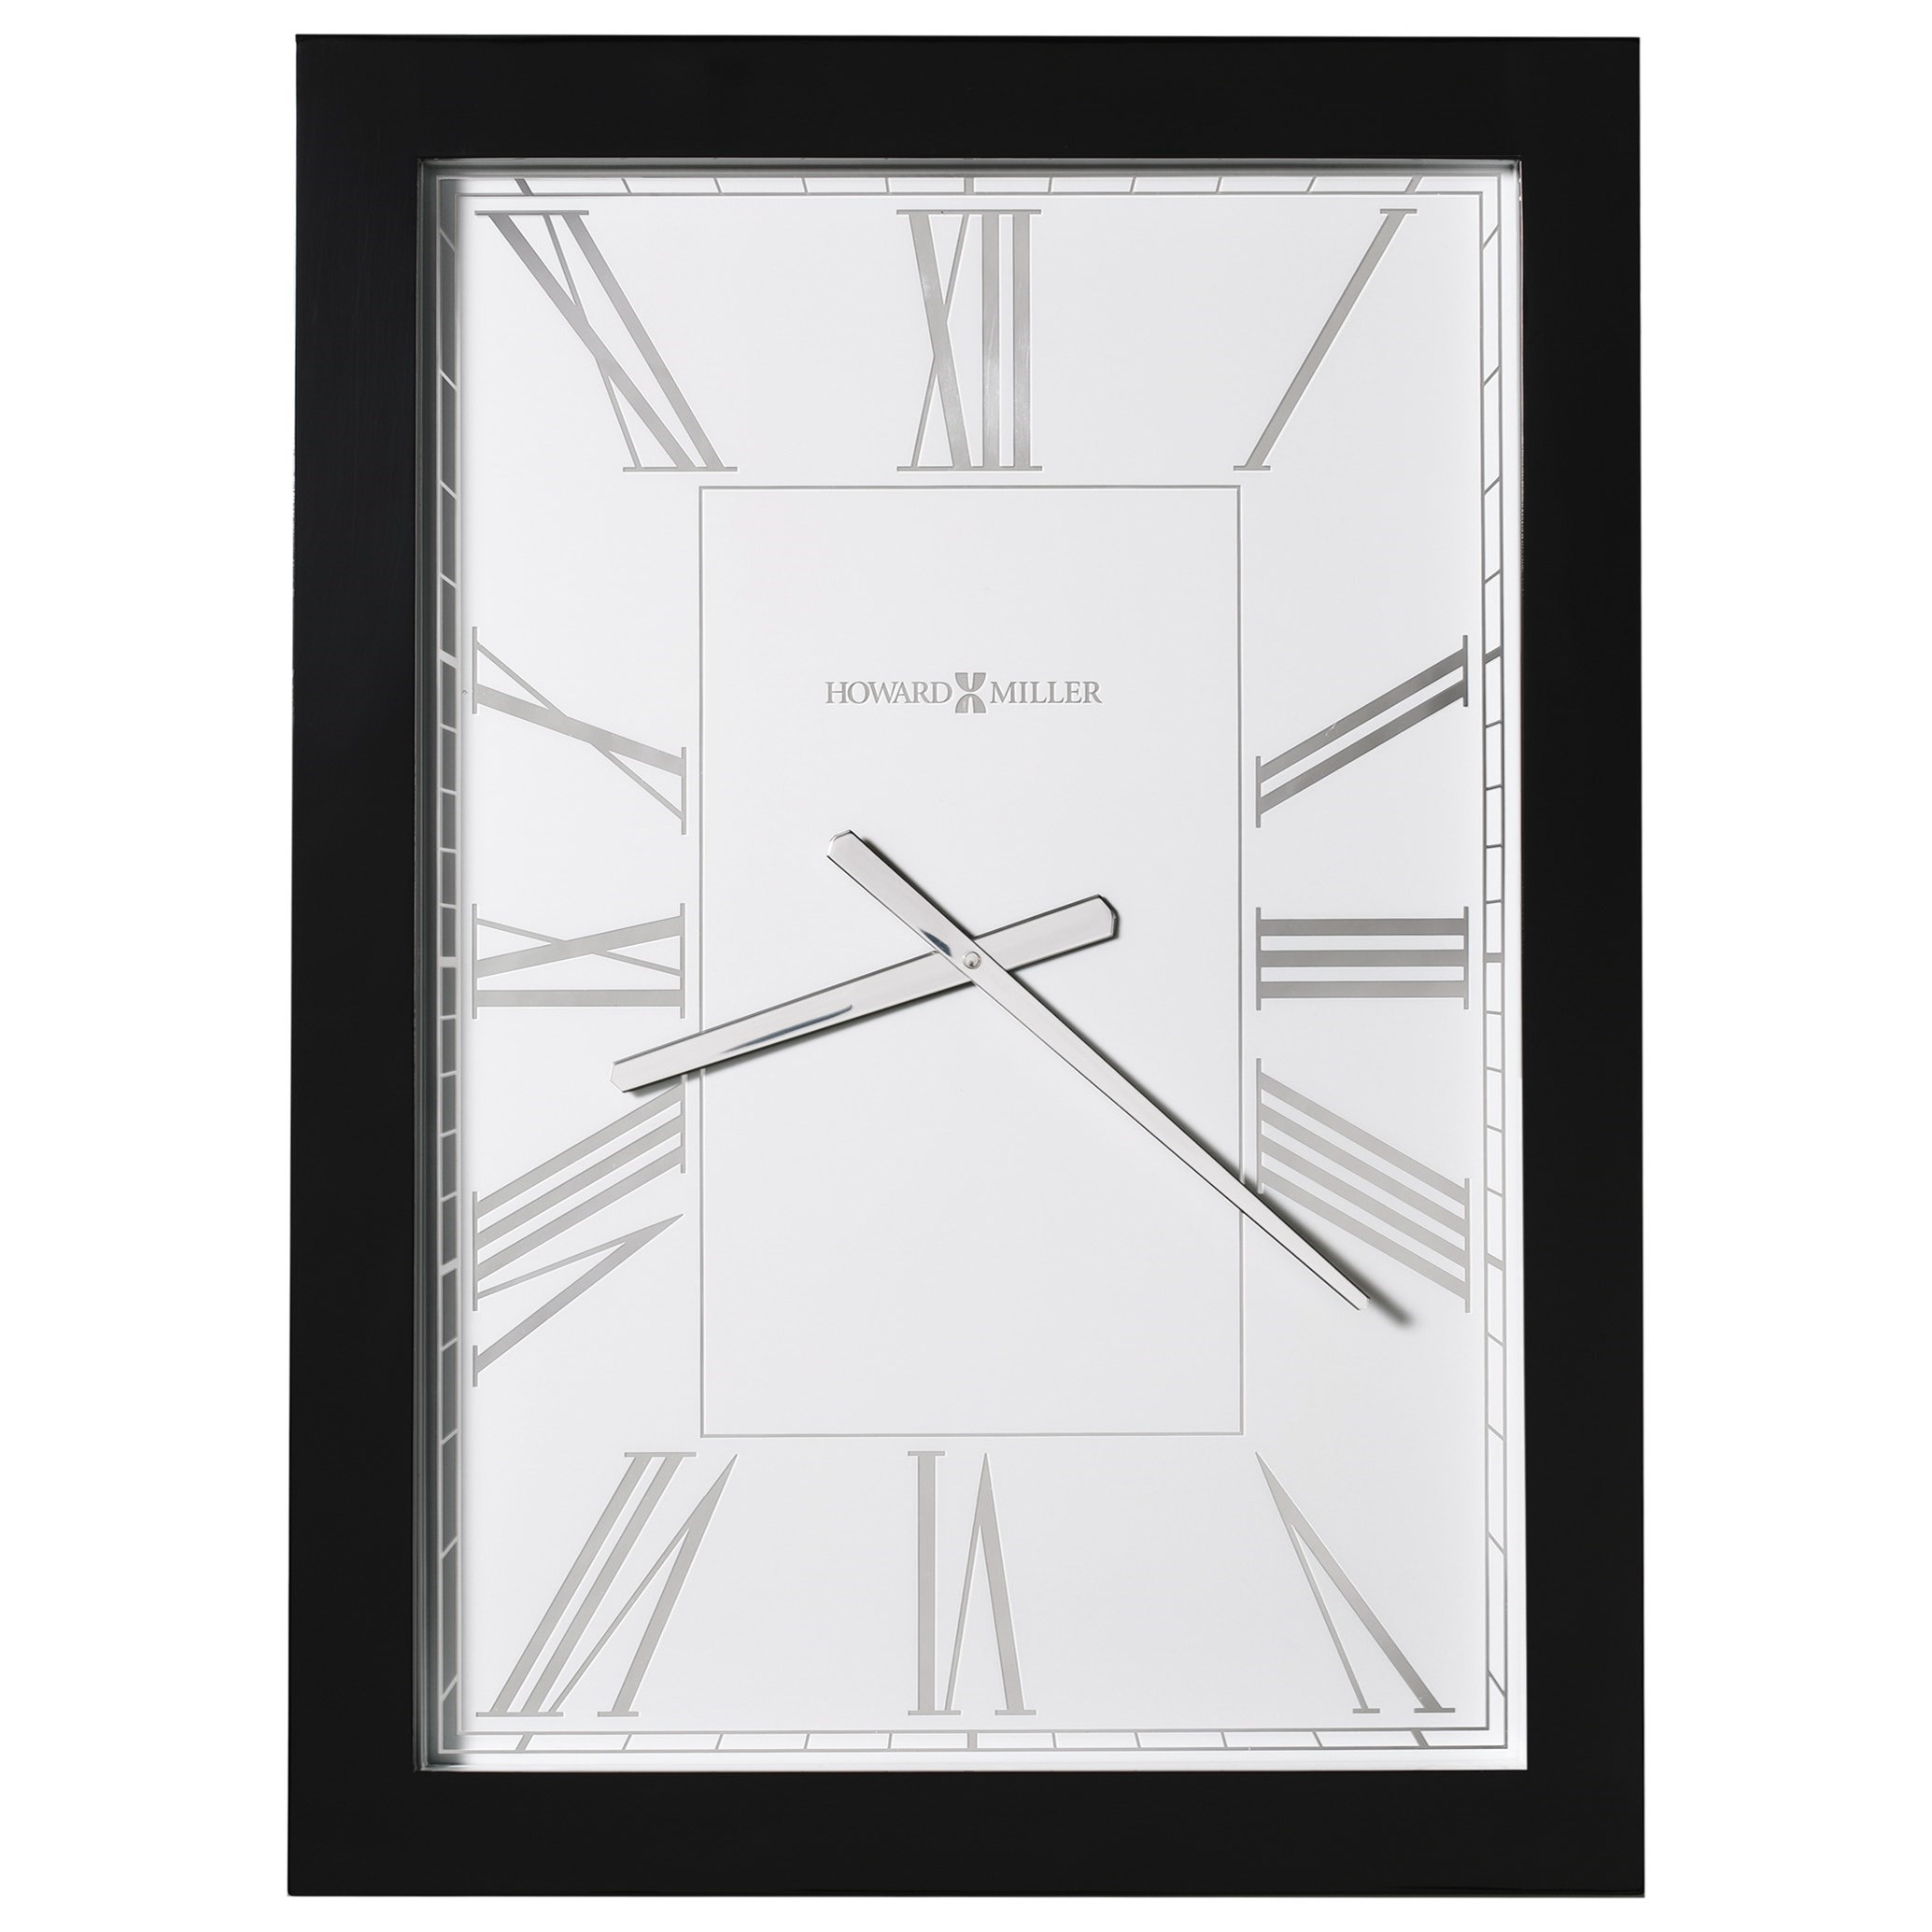 Howard Miller Wall Clocks Milo Clock - Item Number: 625-605